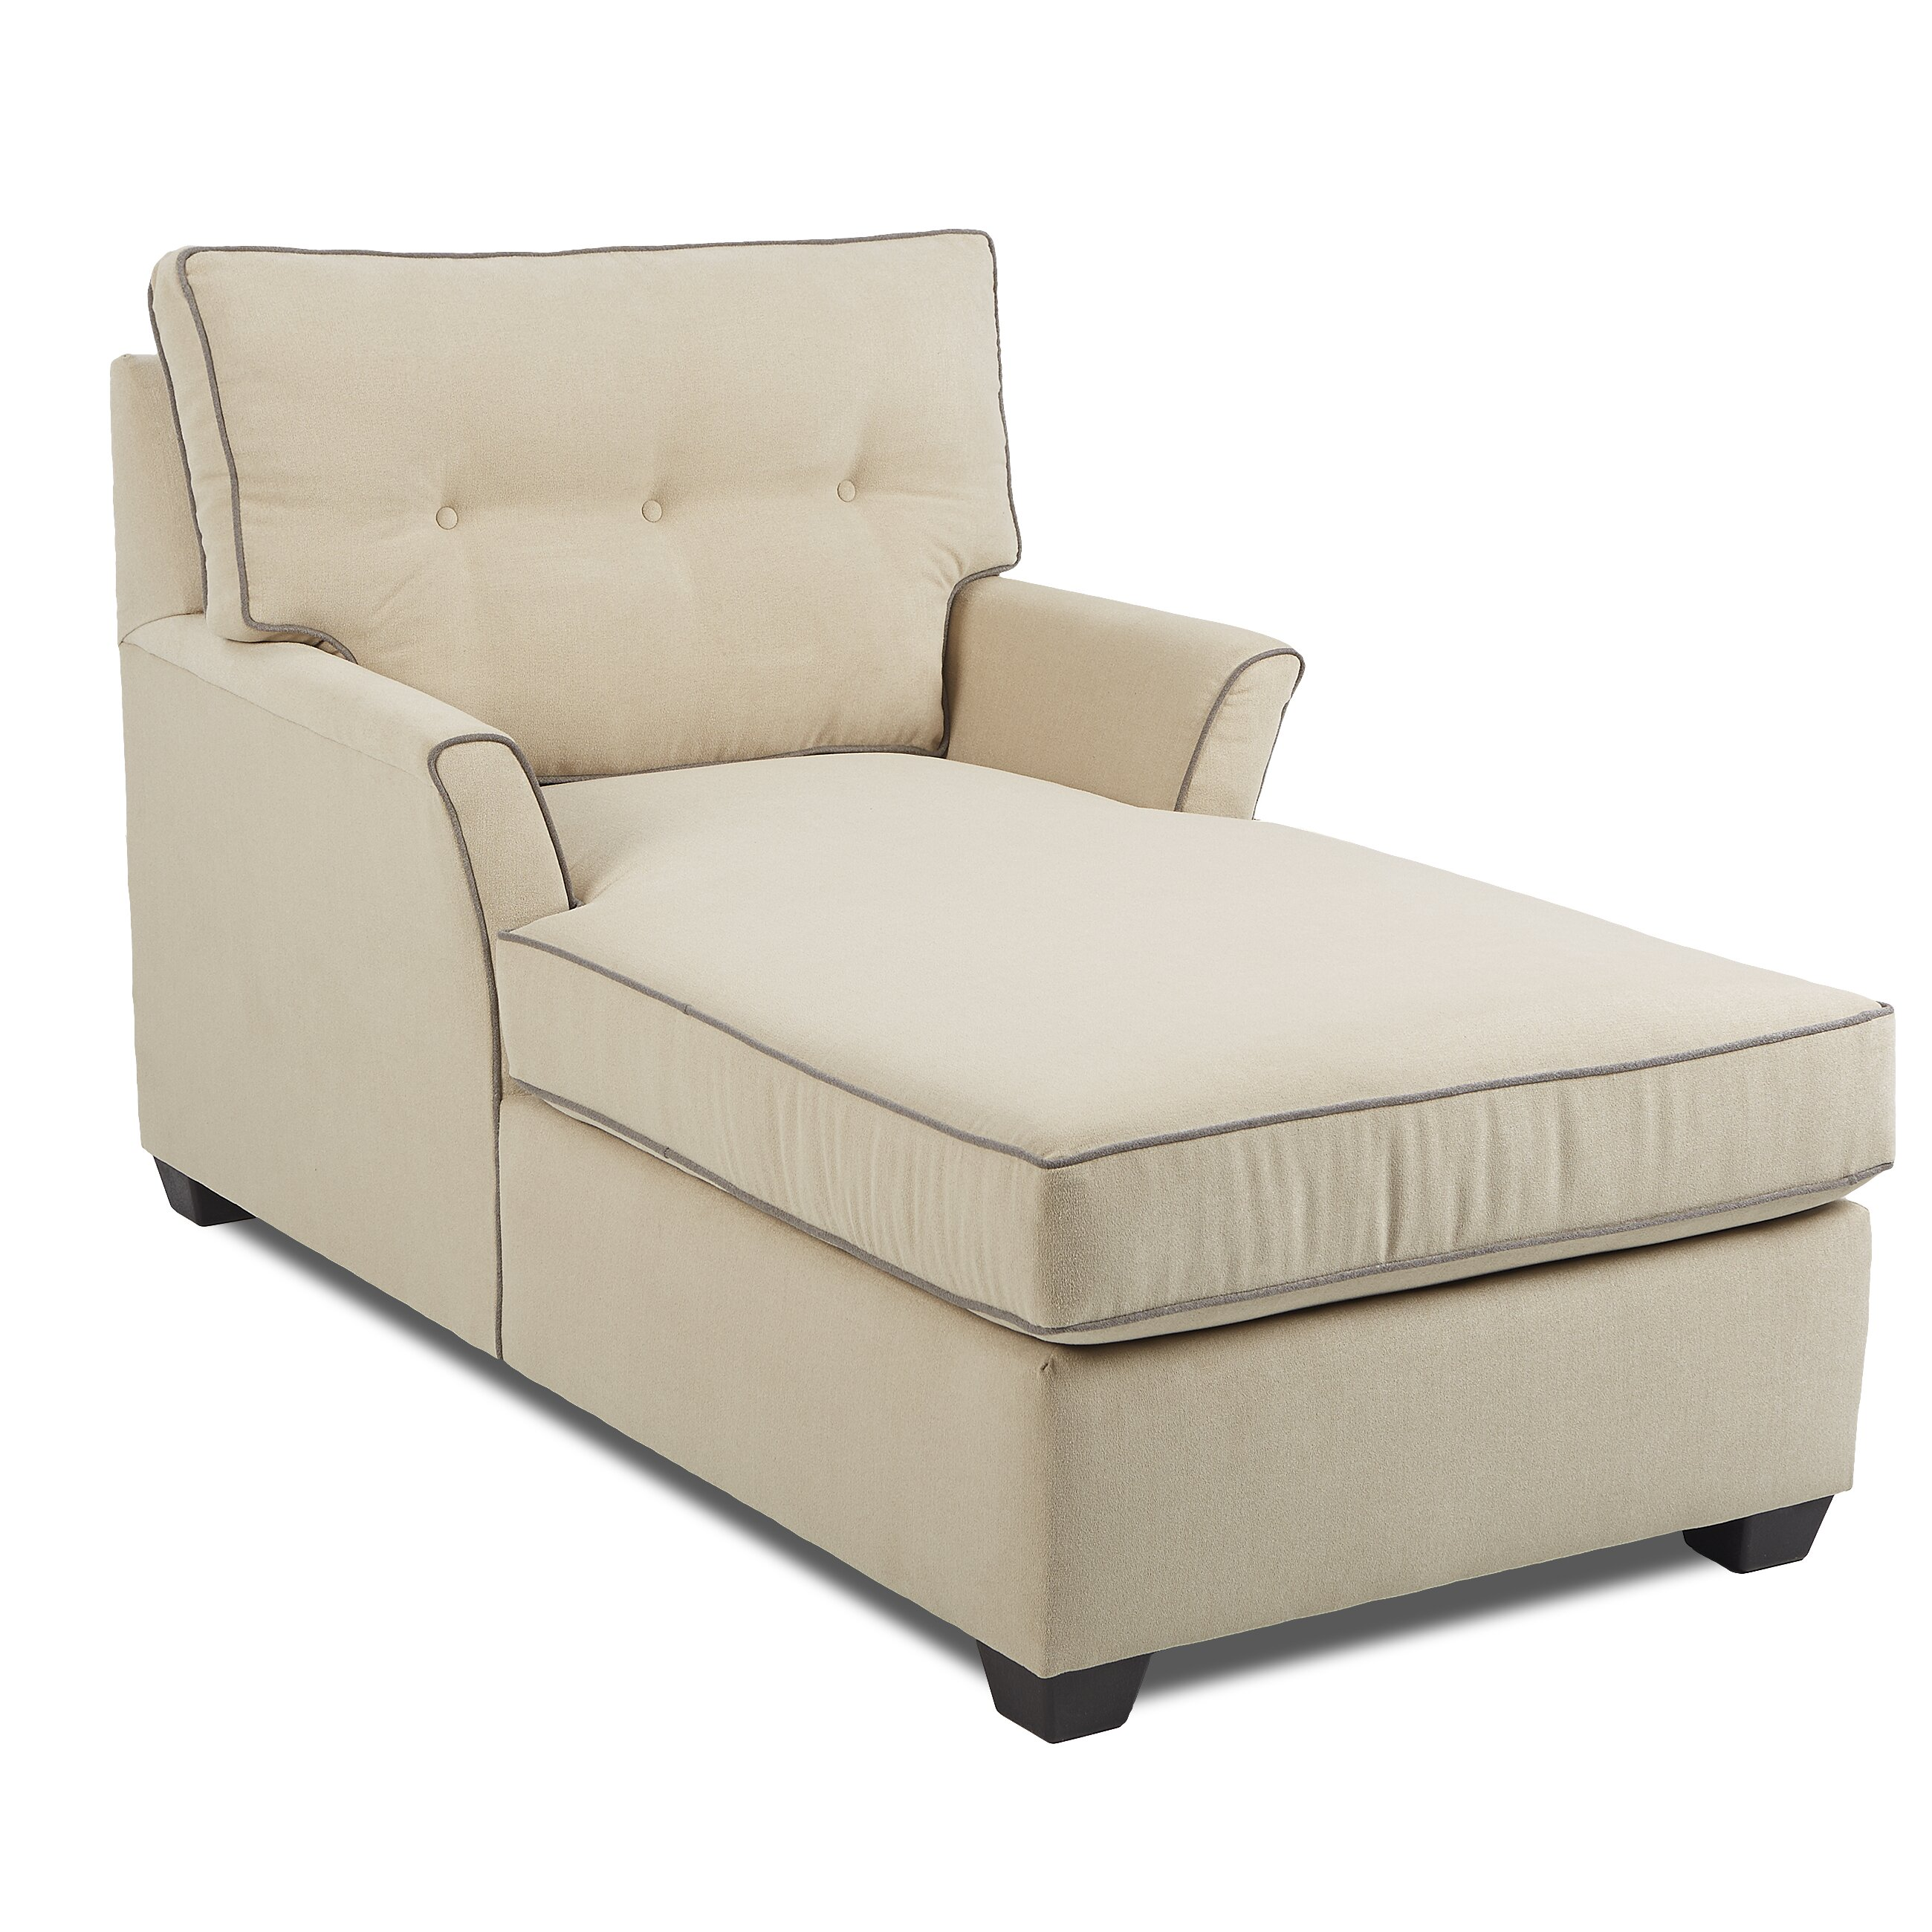 Klaussner chaise lounge chairs klaussner comfy casual for Chaise lounge chair living room